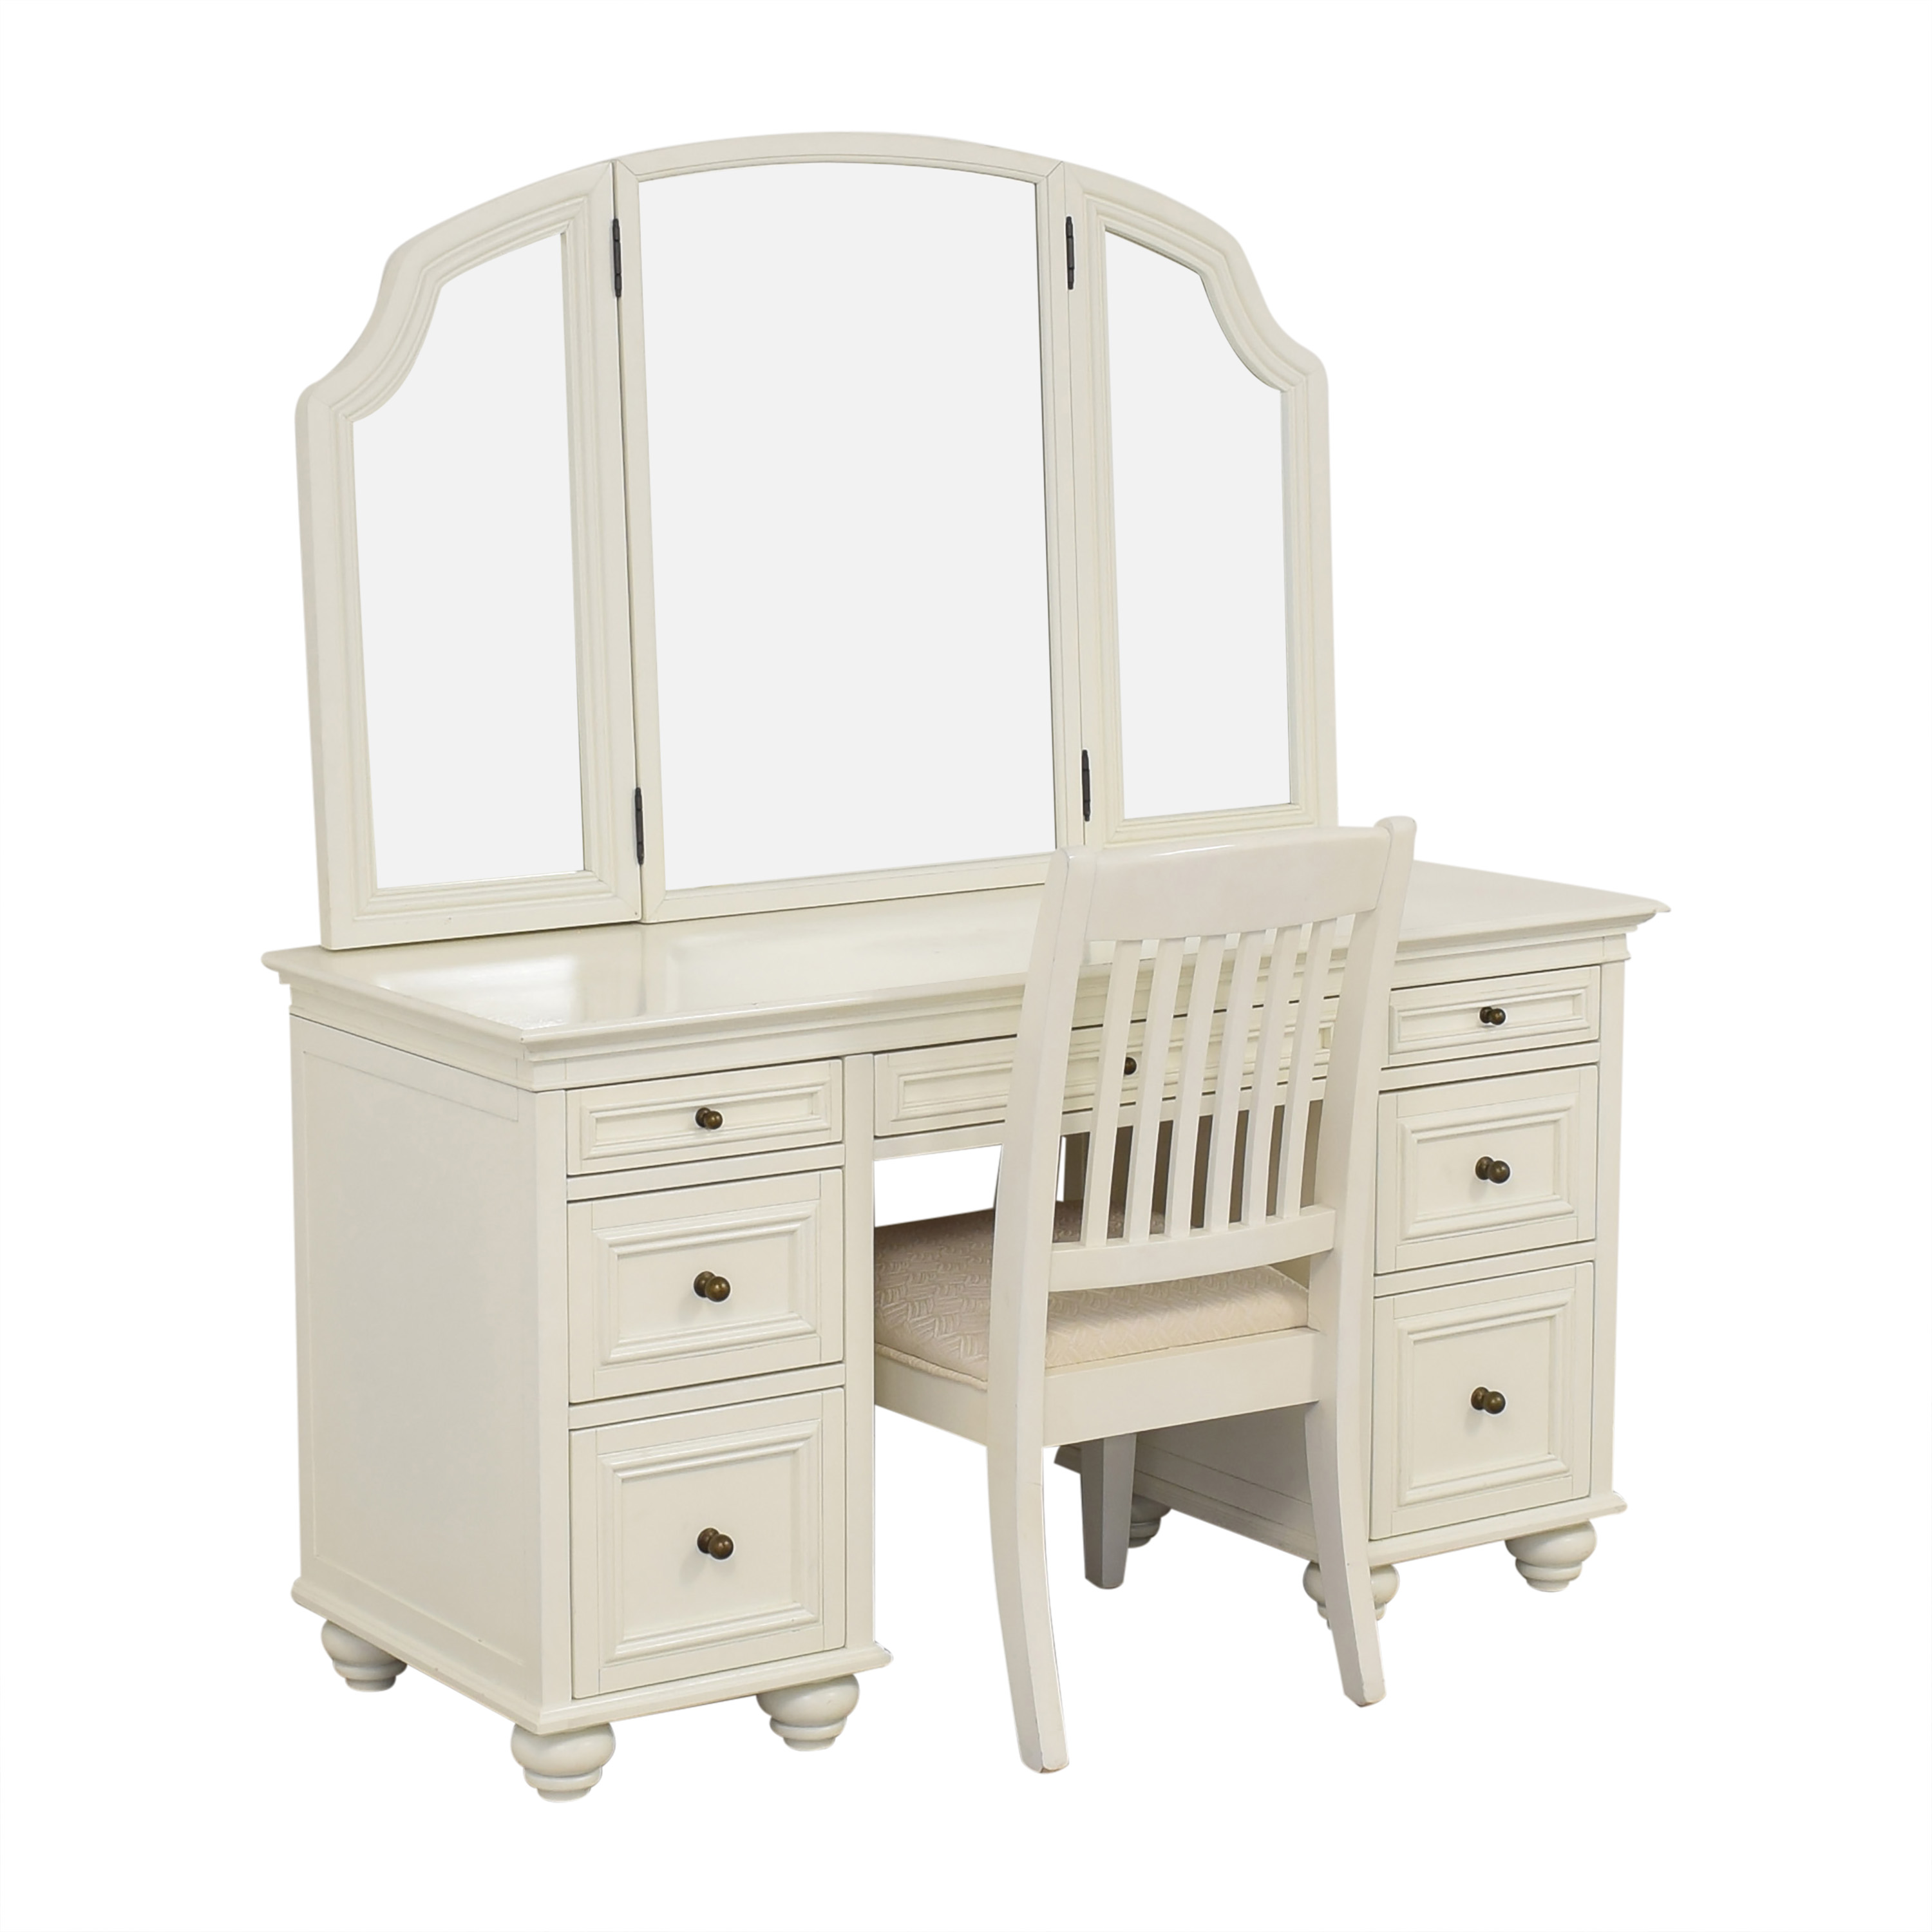 Pottery Barn Pottery Barn Chelsea Vanity Desk with Chair price